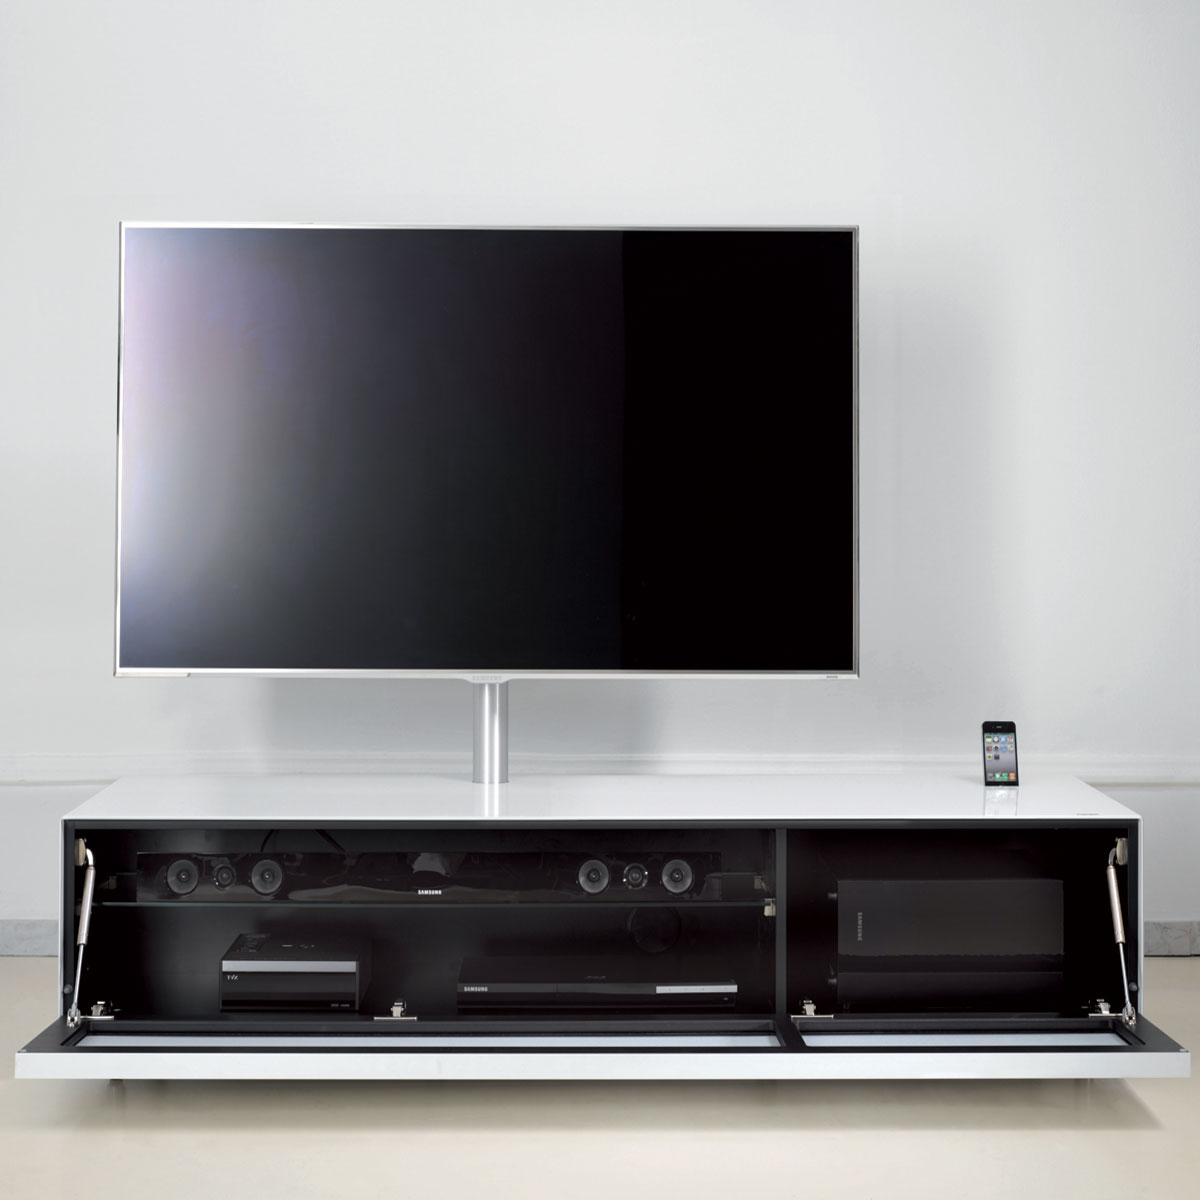 dreams4home tv media element fior mit soundsystem wei schwarz lowboard tv schrank media. Black Bedroom Furniture Sets. Home Design Ideas